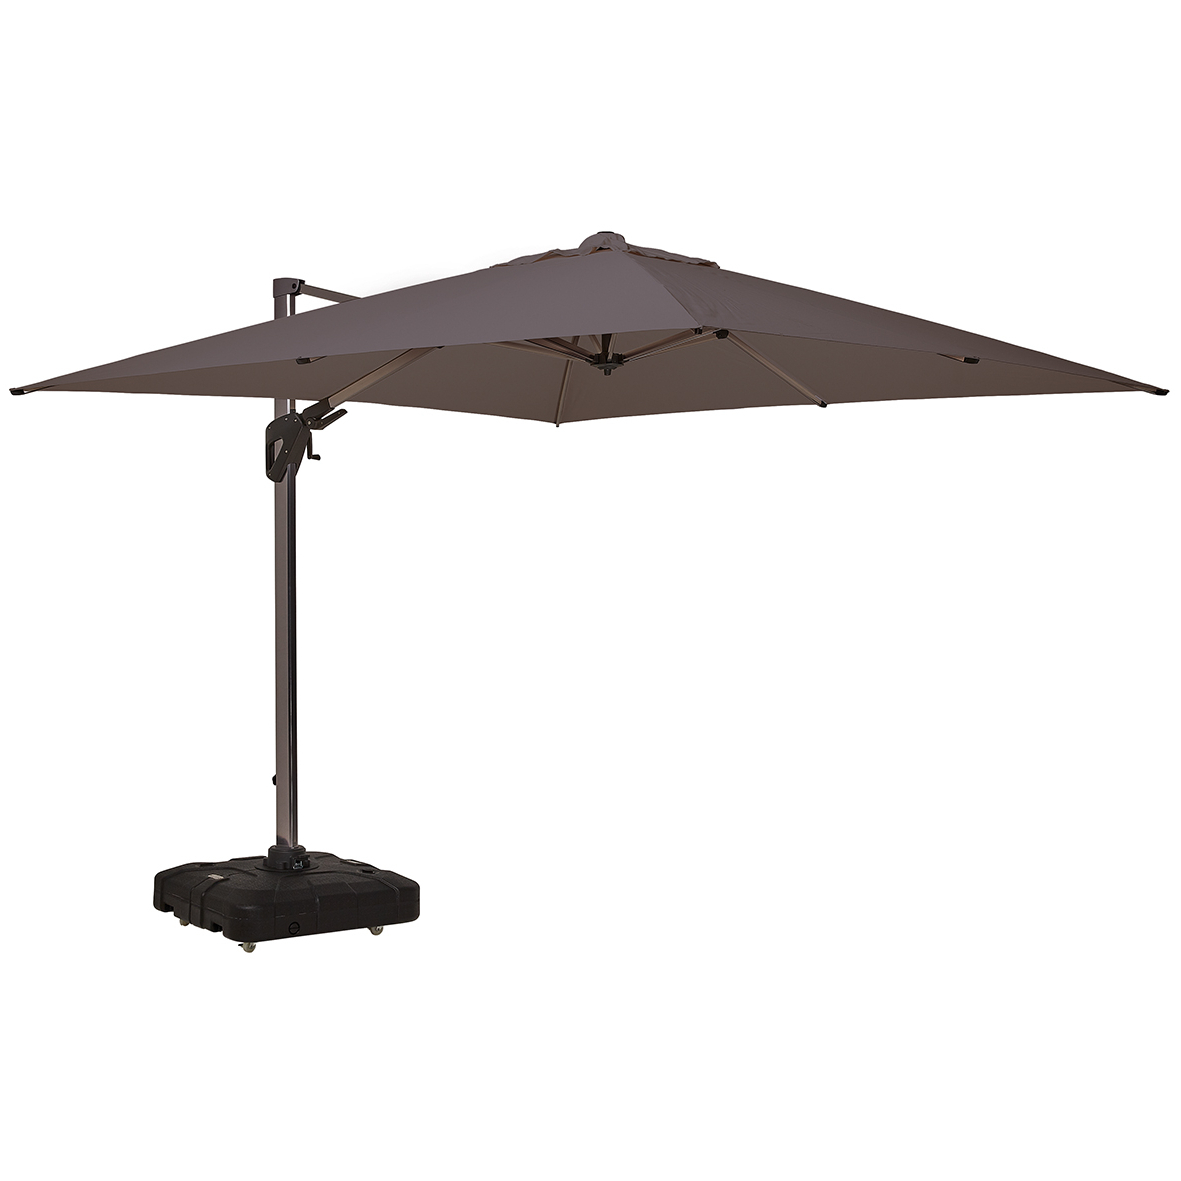 Best And Newest Coolaroo Cantilever Umbrellas With Regard To Melaleuca 3M Square Cantilever Umbrella (View 2 of 20)